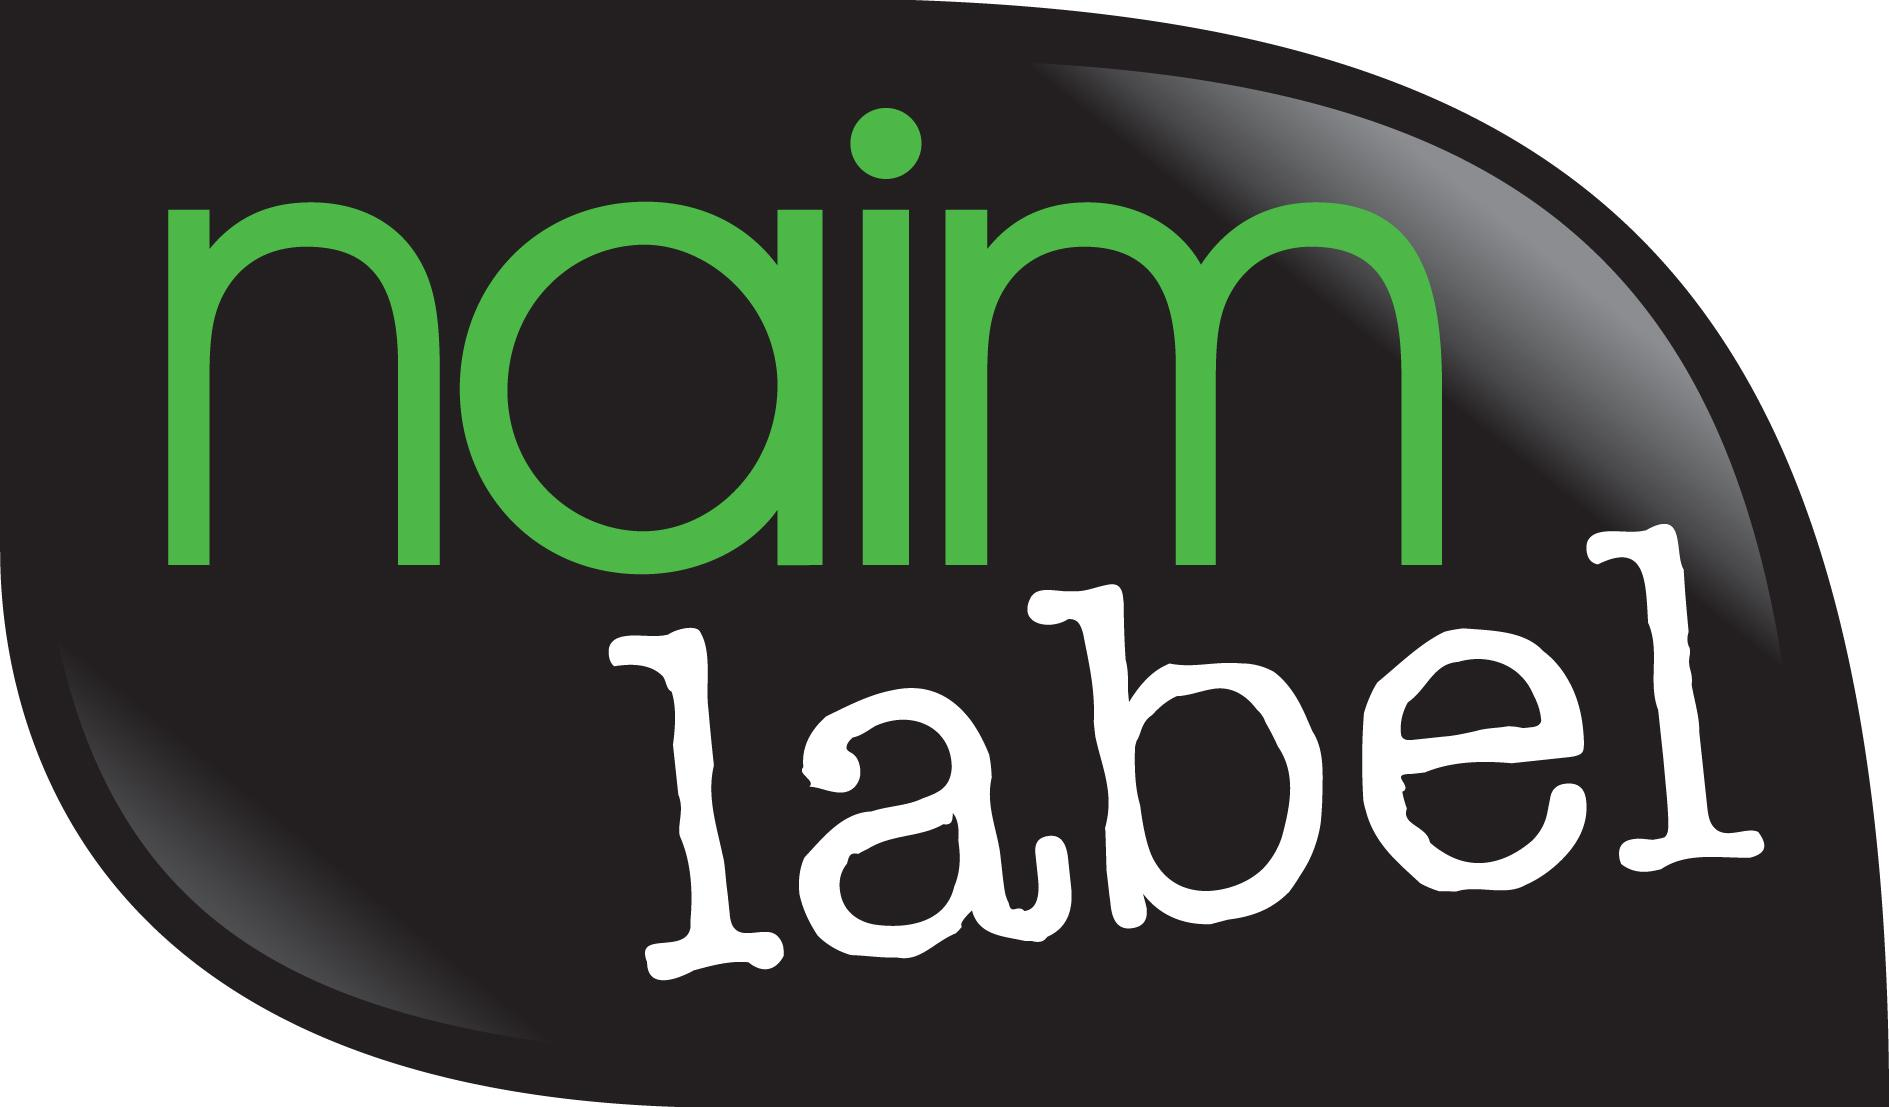 Naim label